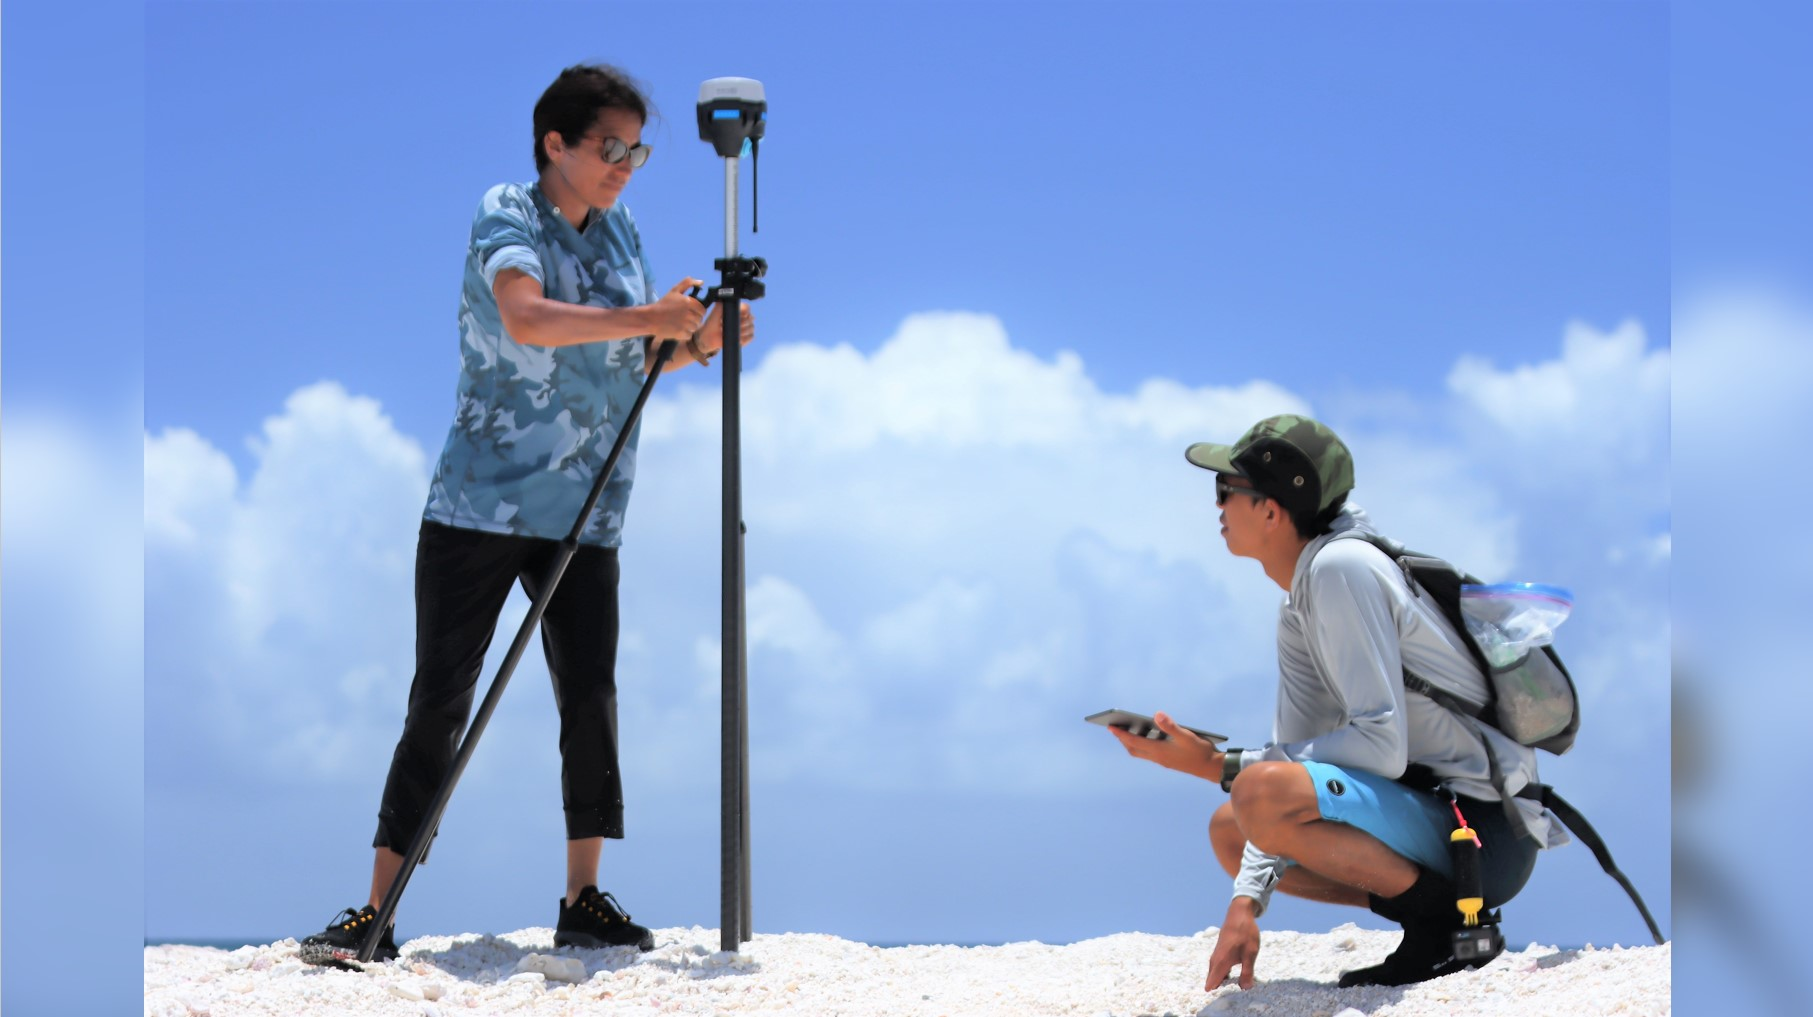 Two people on sandy area using measuring equipment.